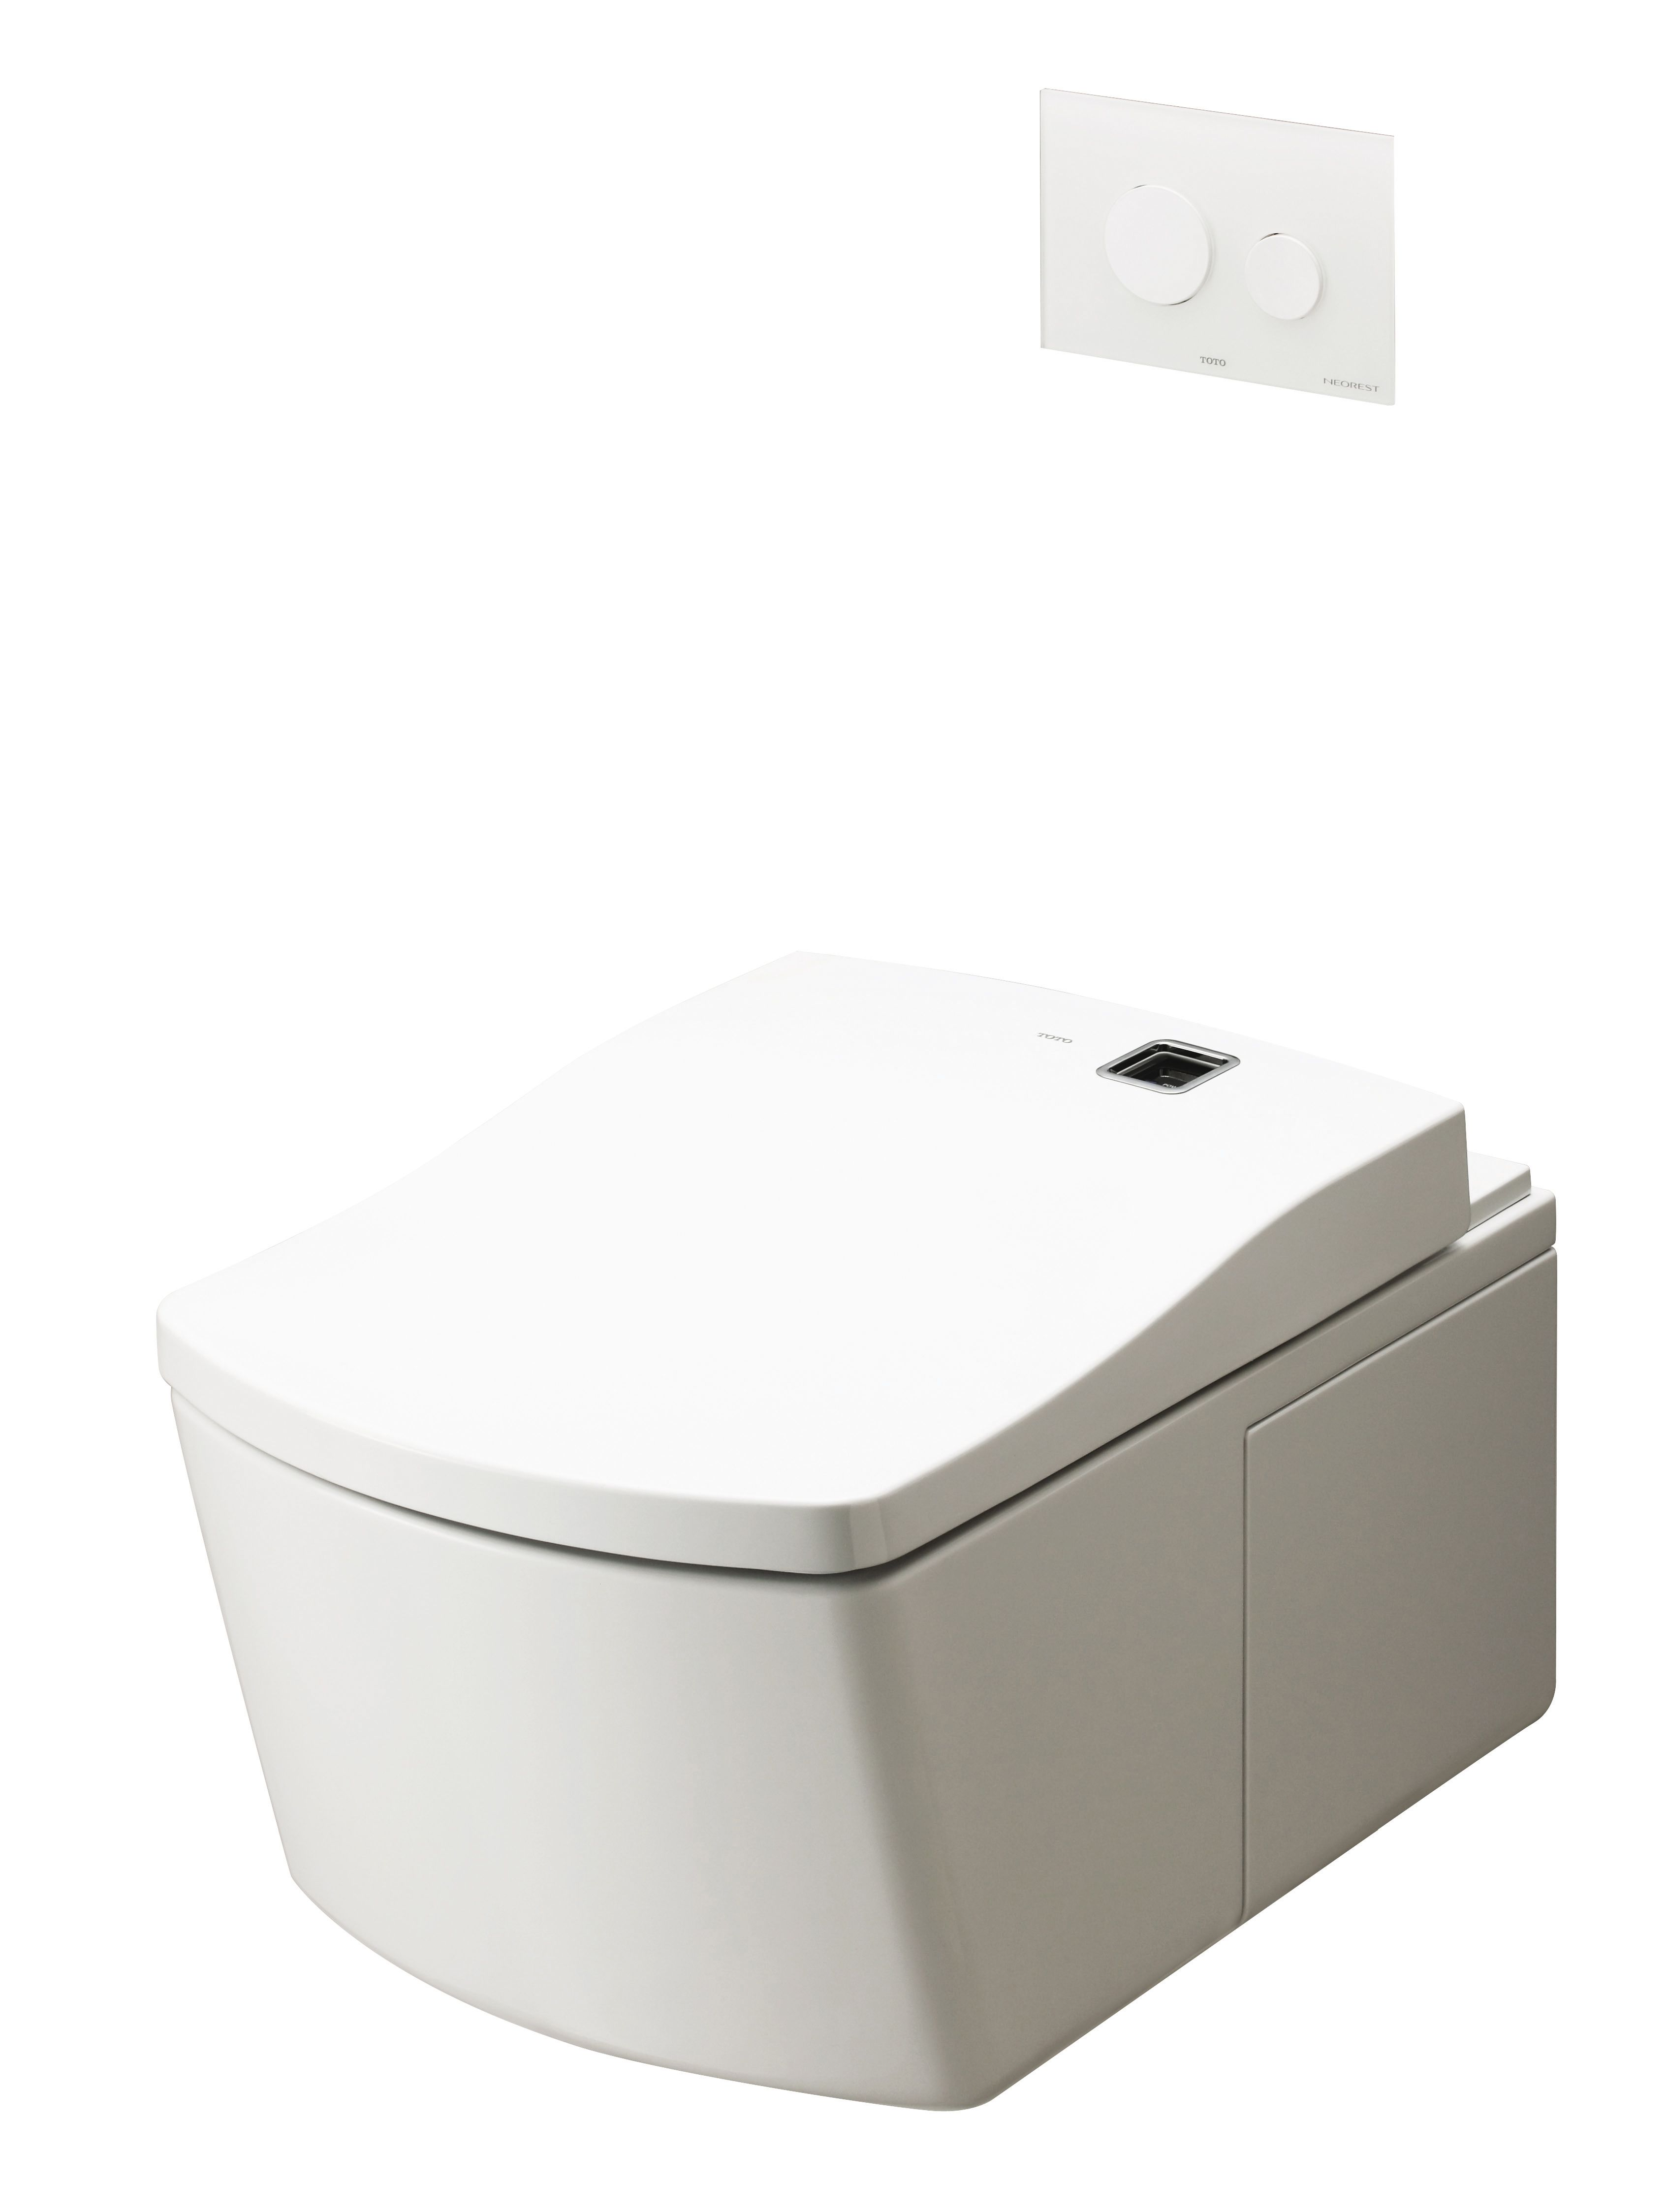 Toto Neorest / LE WC CW998DF toilet and bidet combination ...